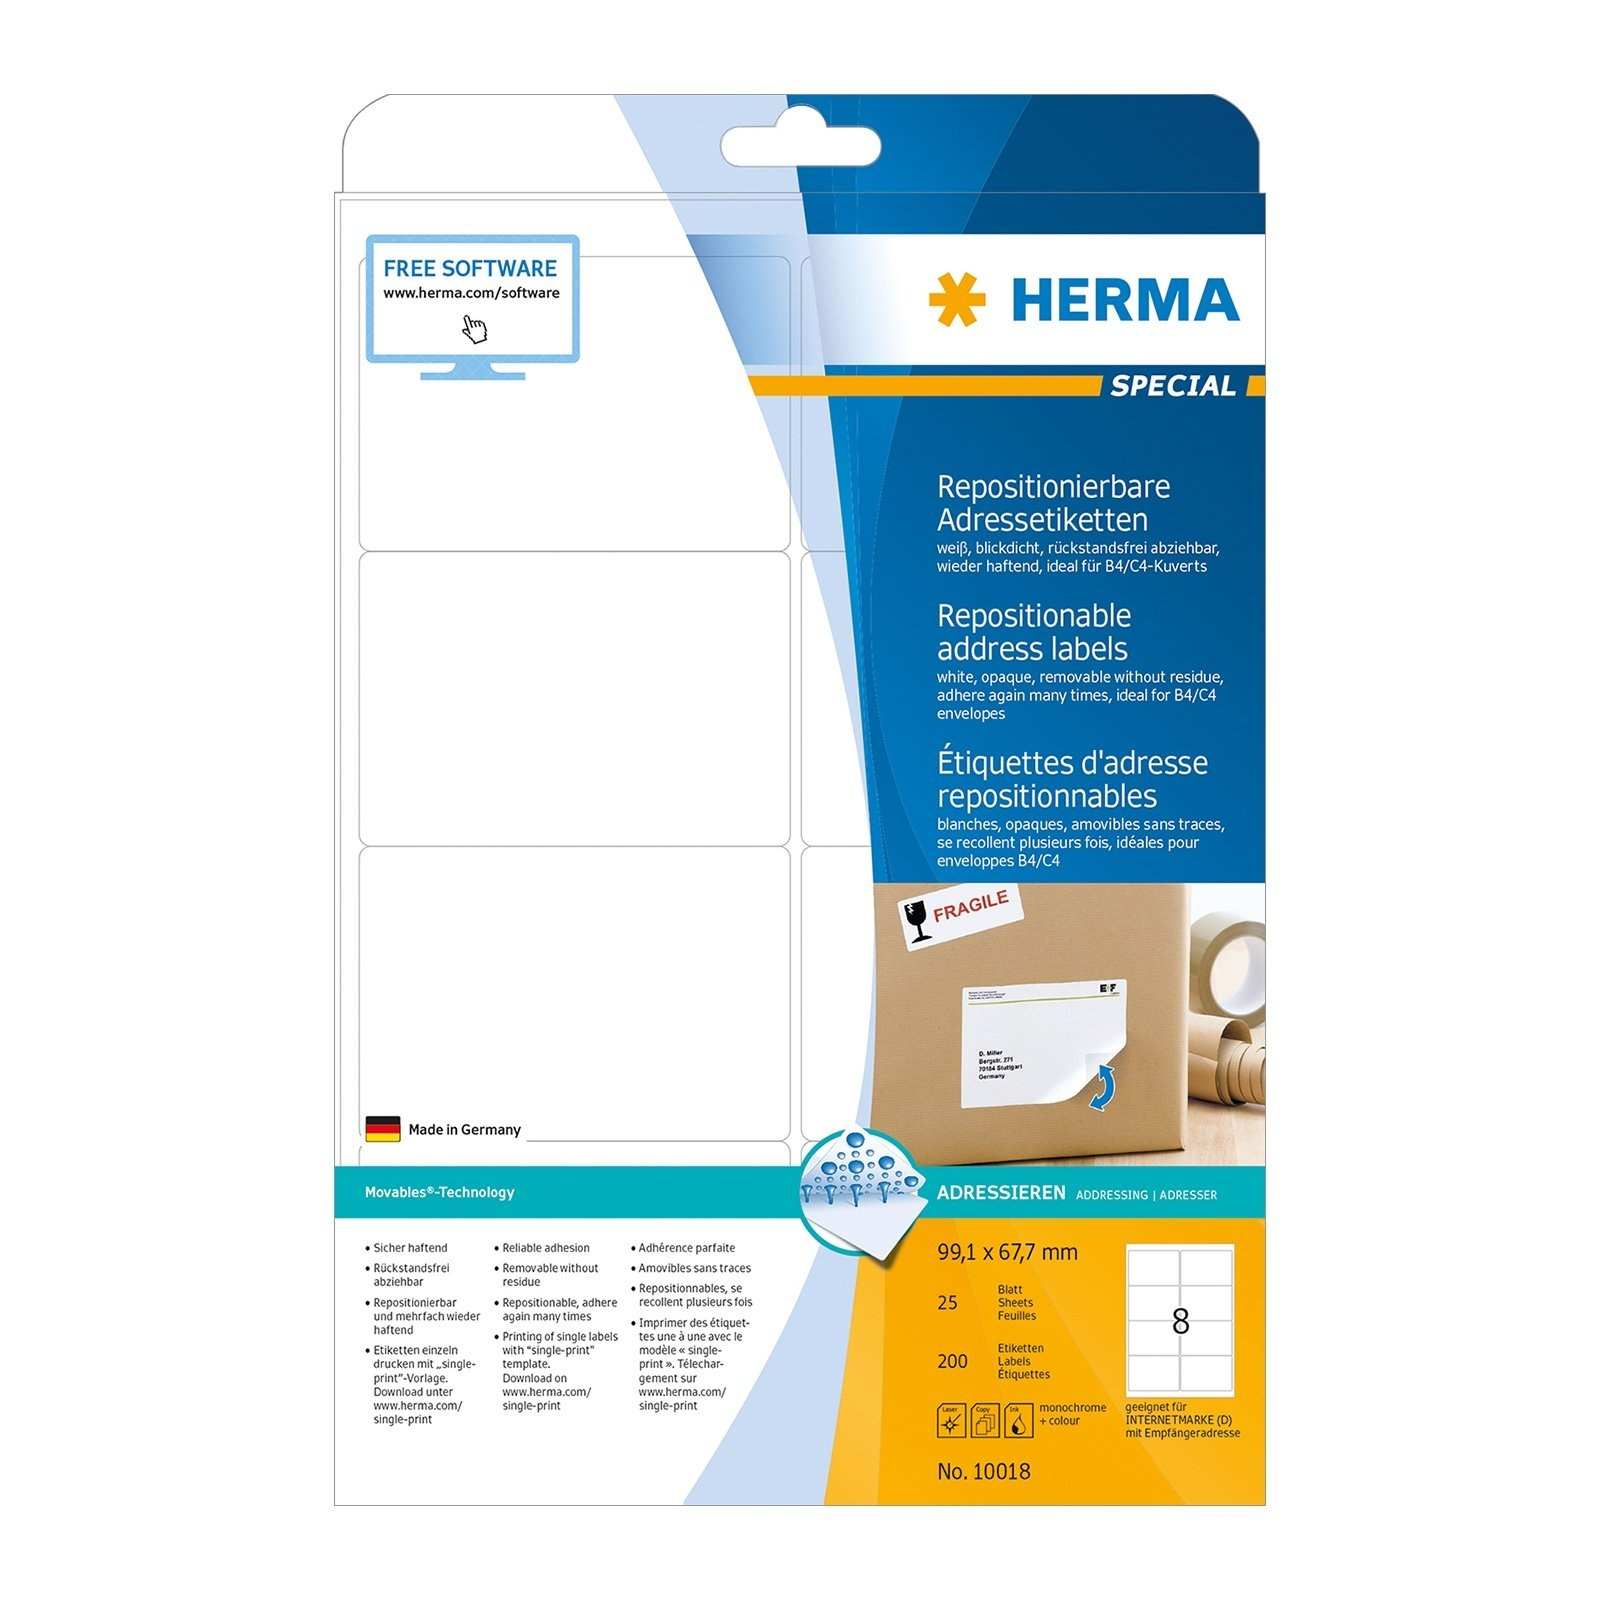 Buy Herma Removable Address Labels A  X  Mm White  Shm In 99.1 X 67.7 Mm Label Template